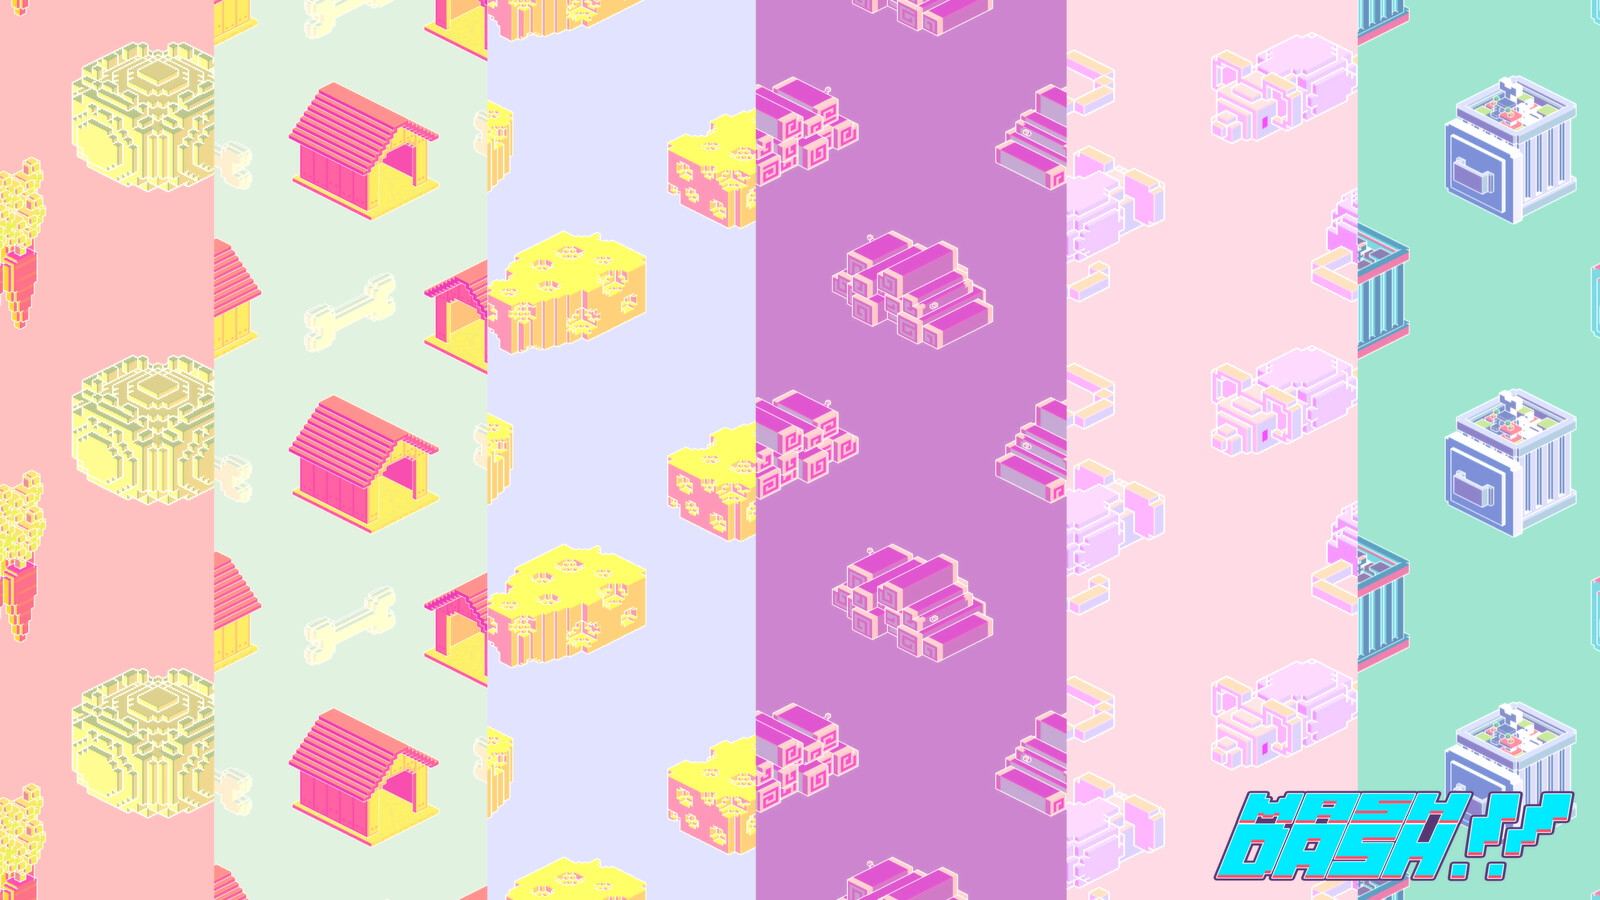 Retro inspired backgrounds.